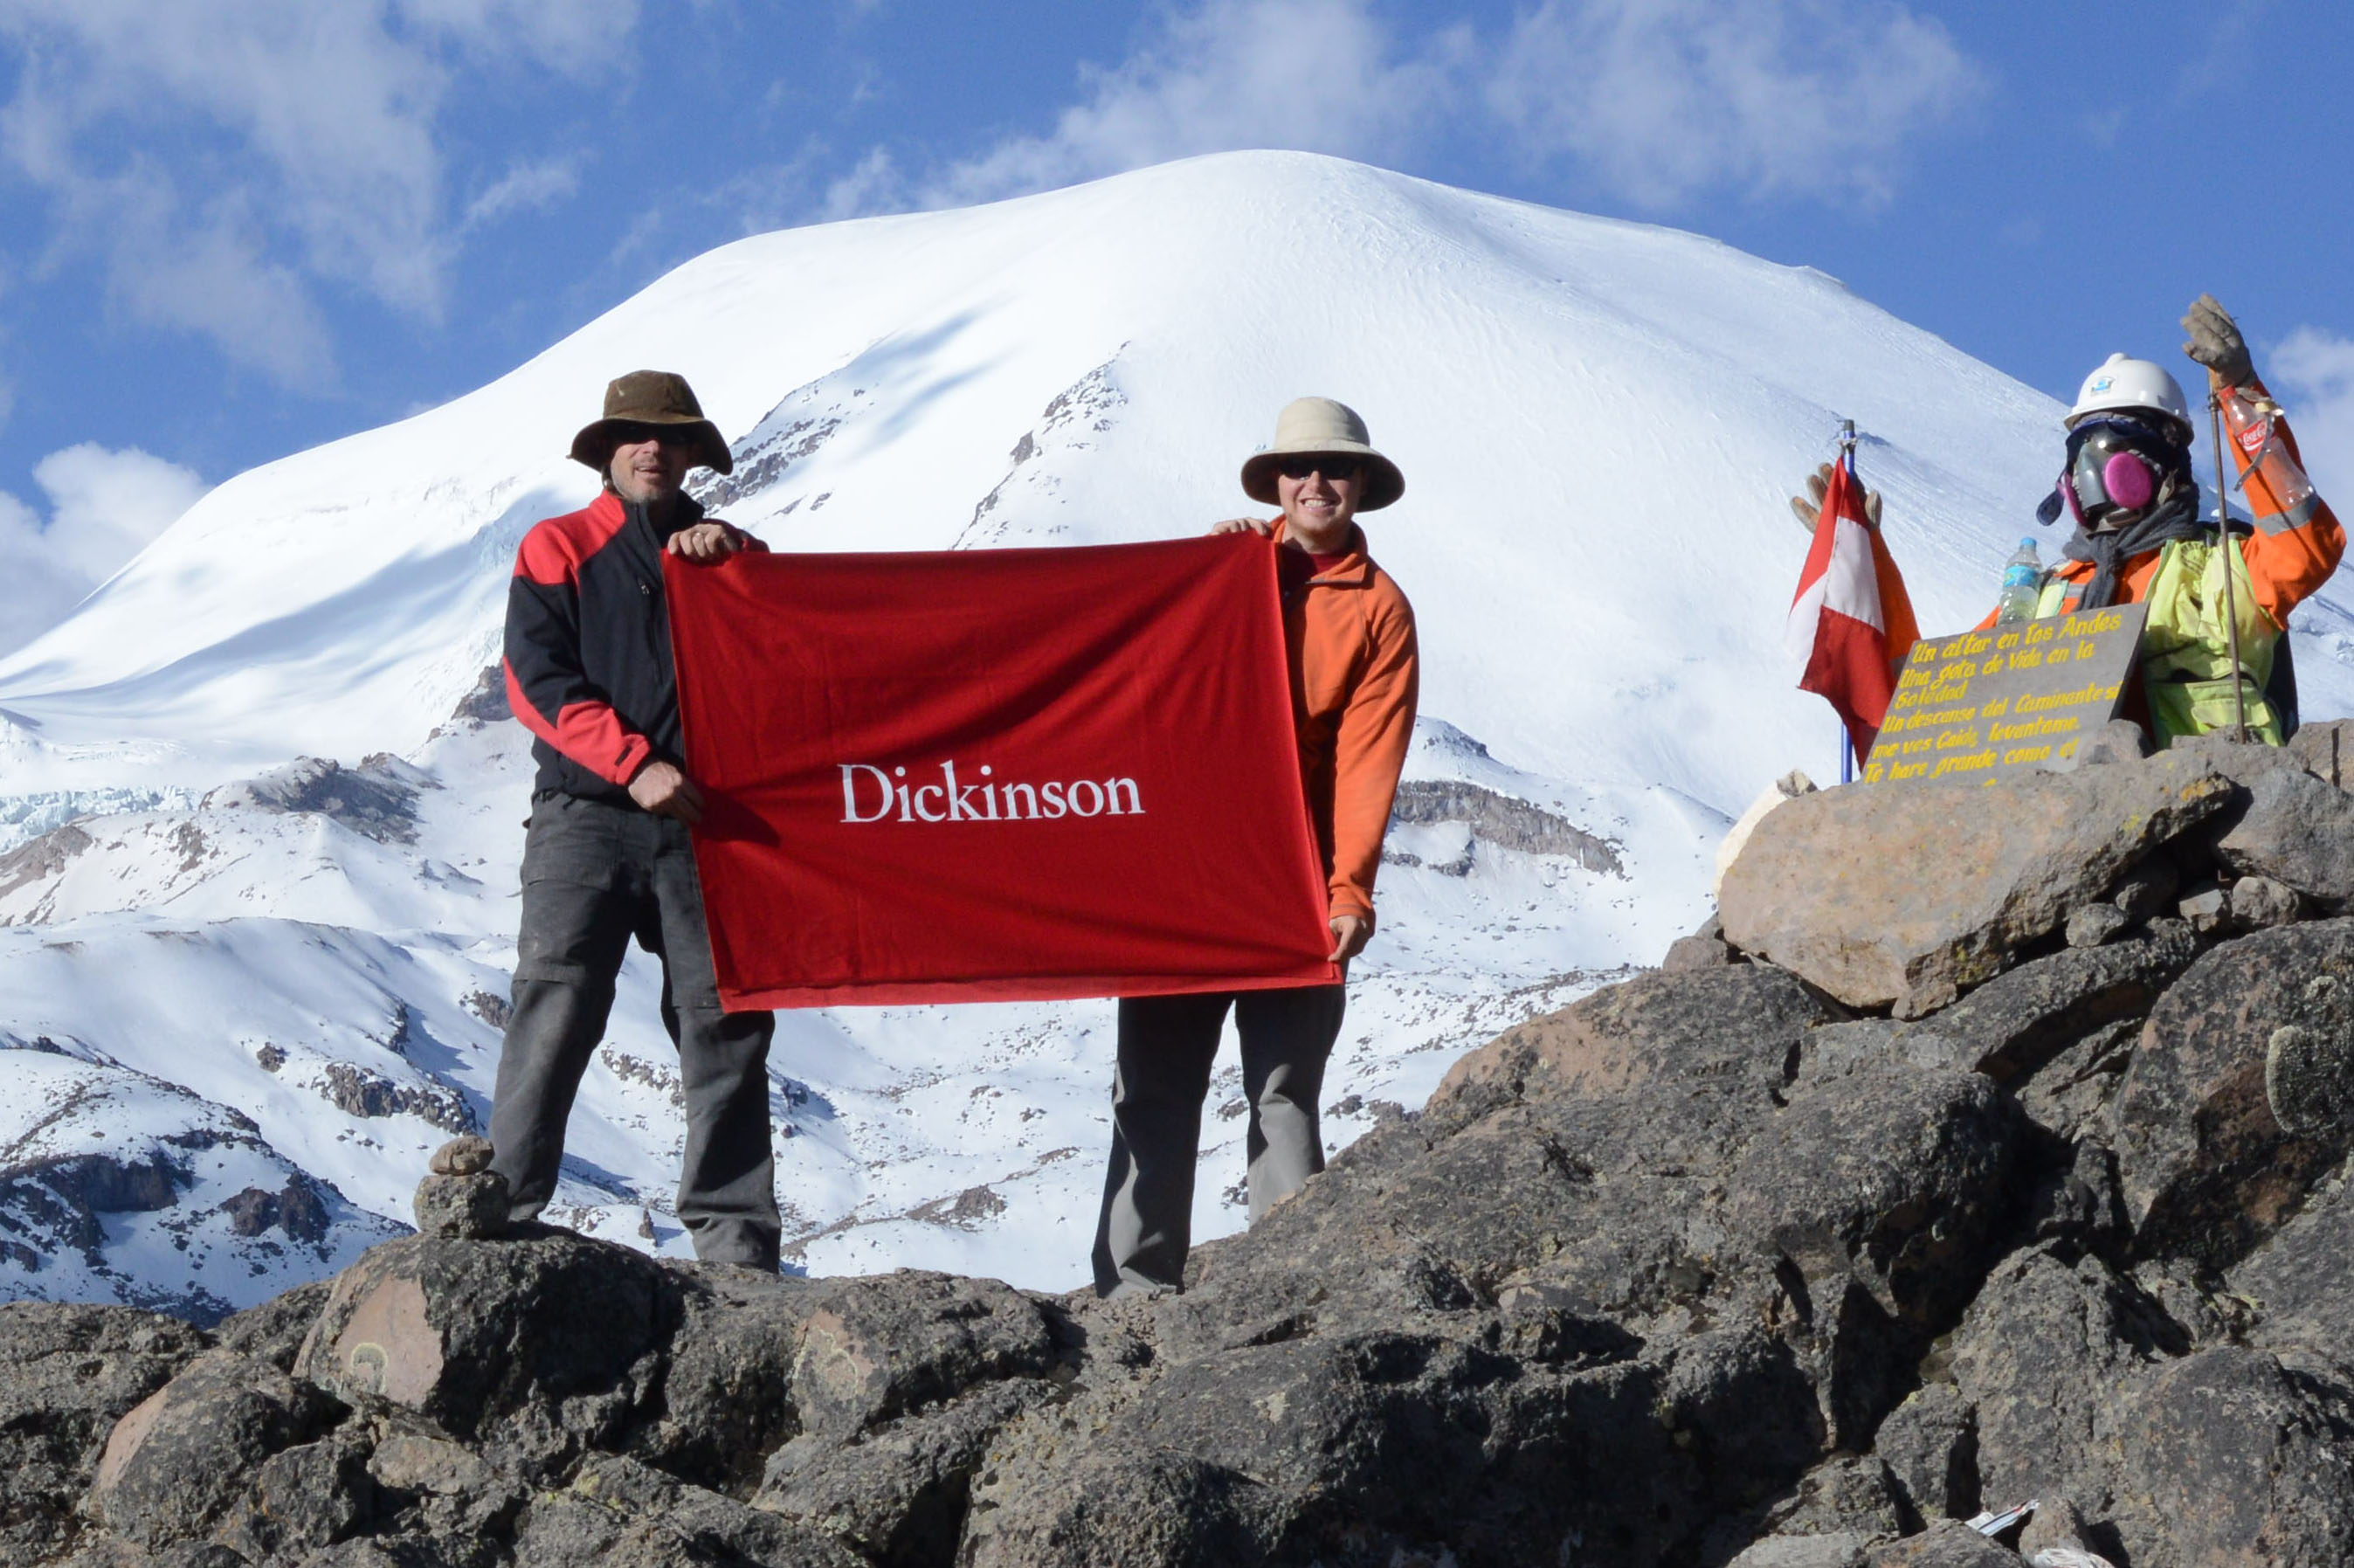 Students holding up a Dickinson sign on the Andes mountains.